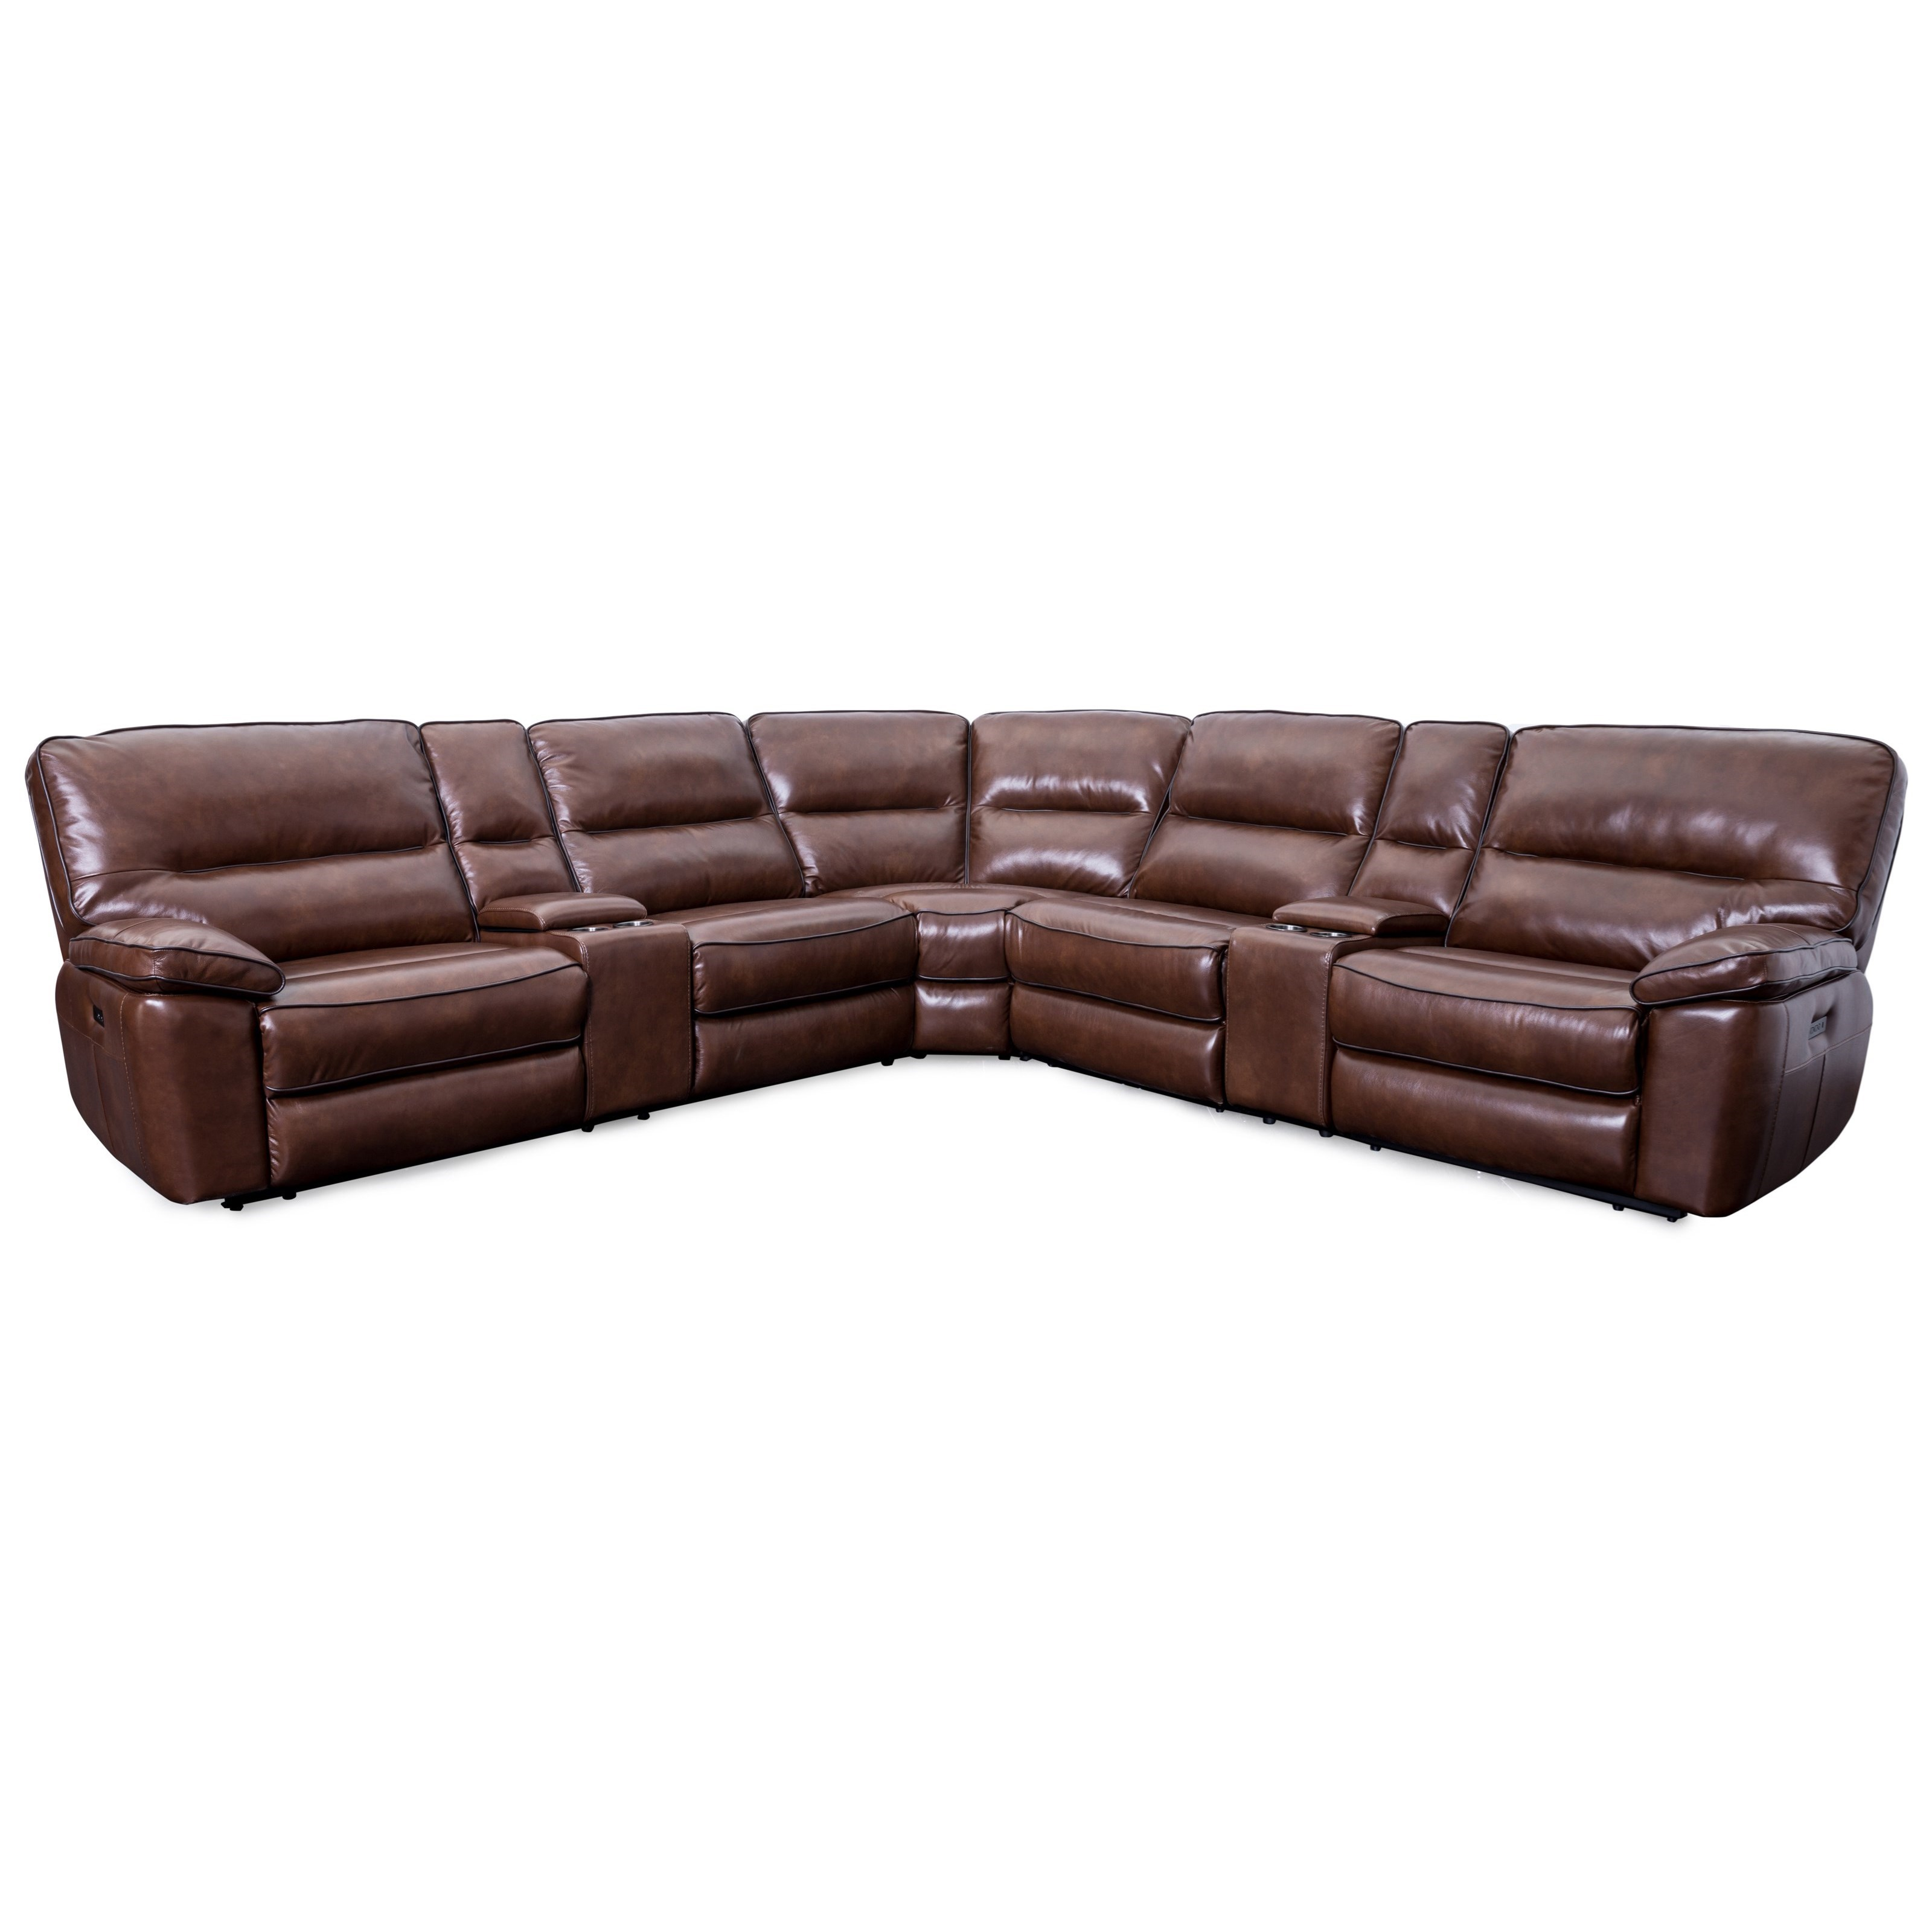 70049 Power Headrests Reclining Sectional by Cheers at Lagniappe Home Store